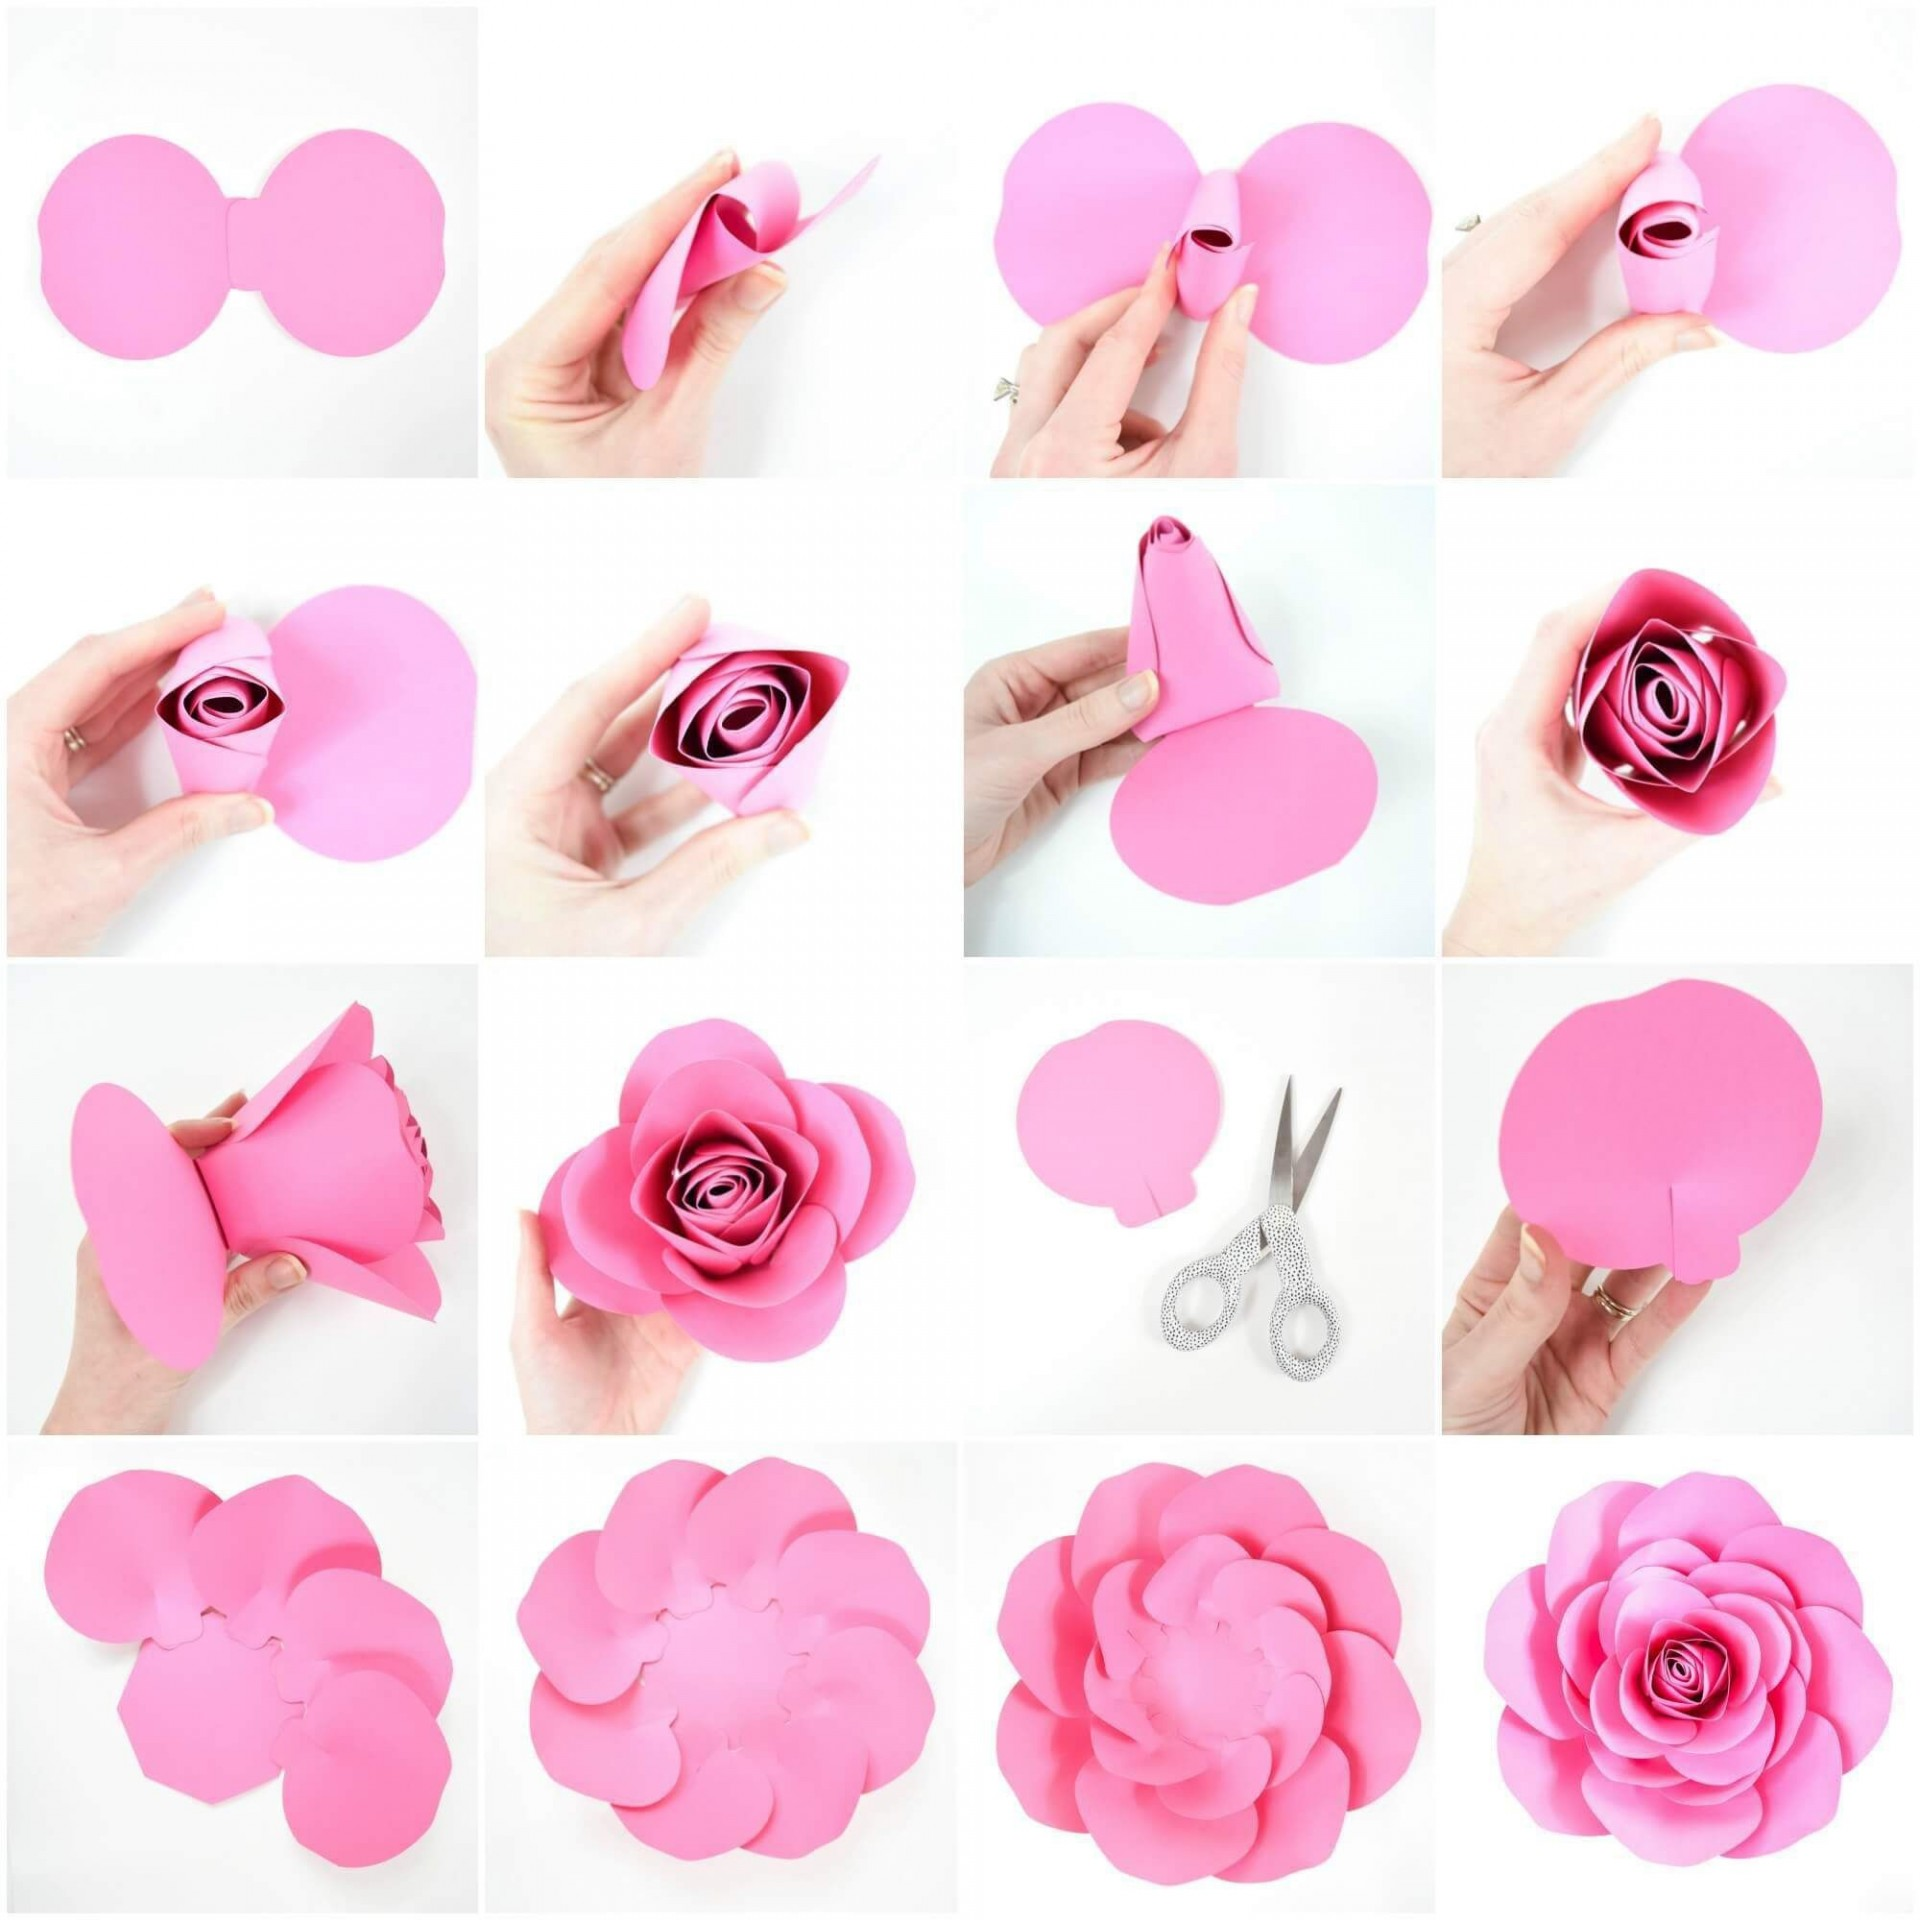 003 Staggering Free Small Paper Flower Petal Template Idea  Templates1920